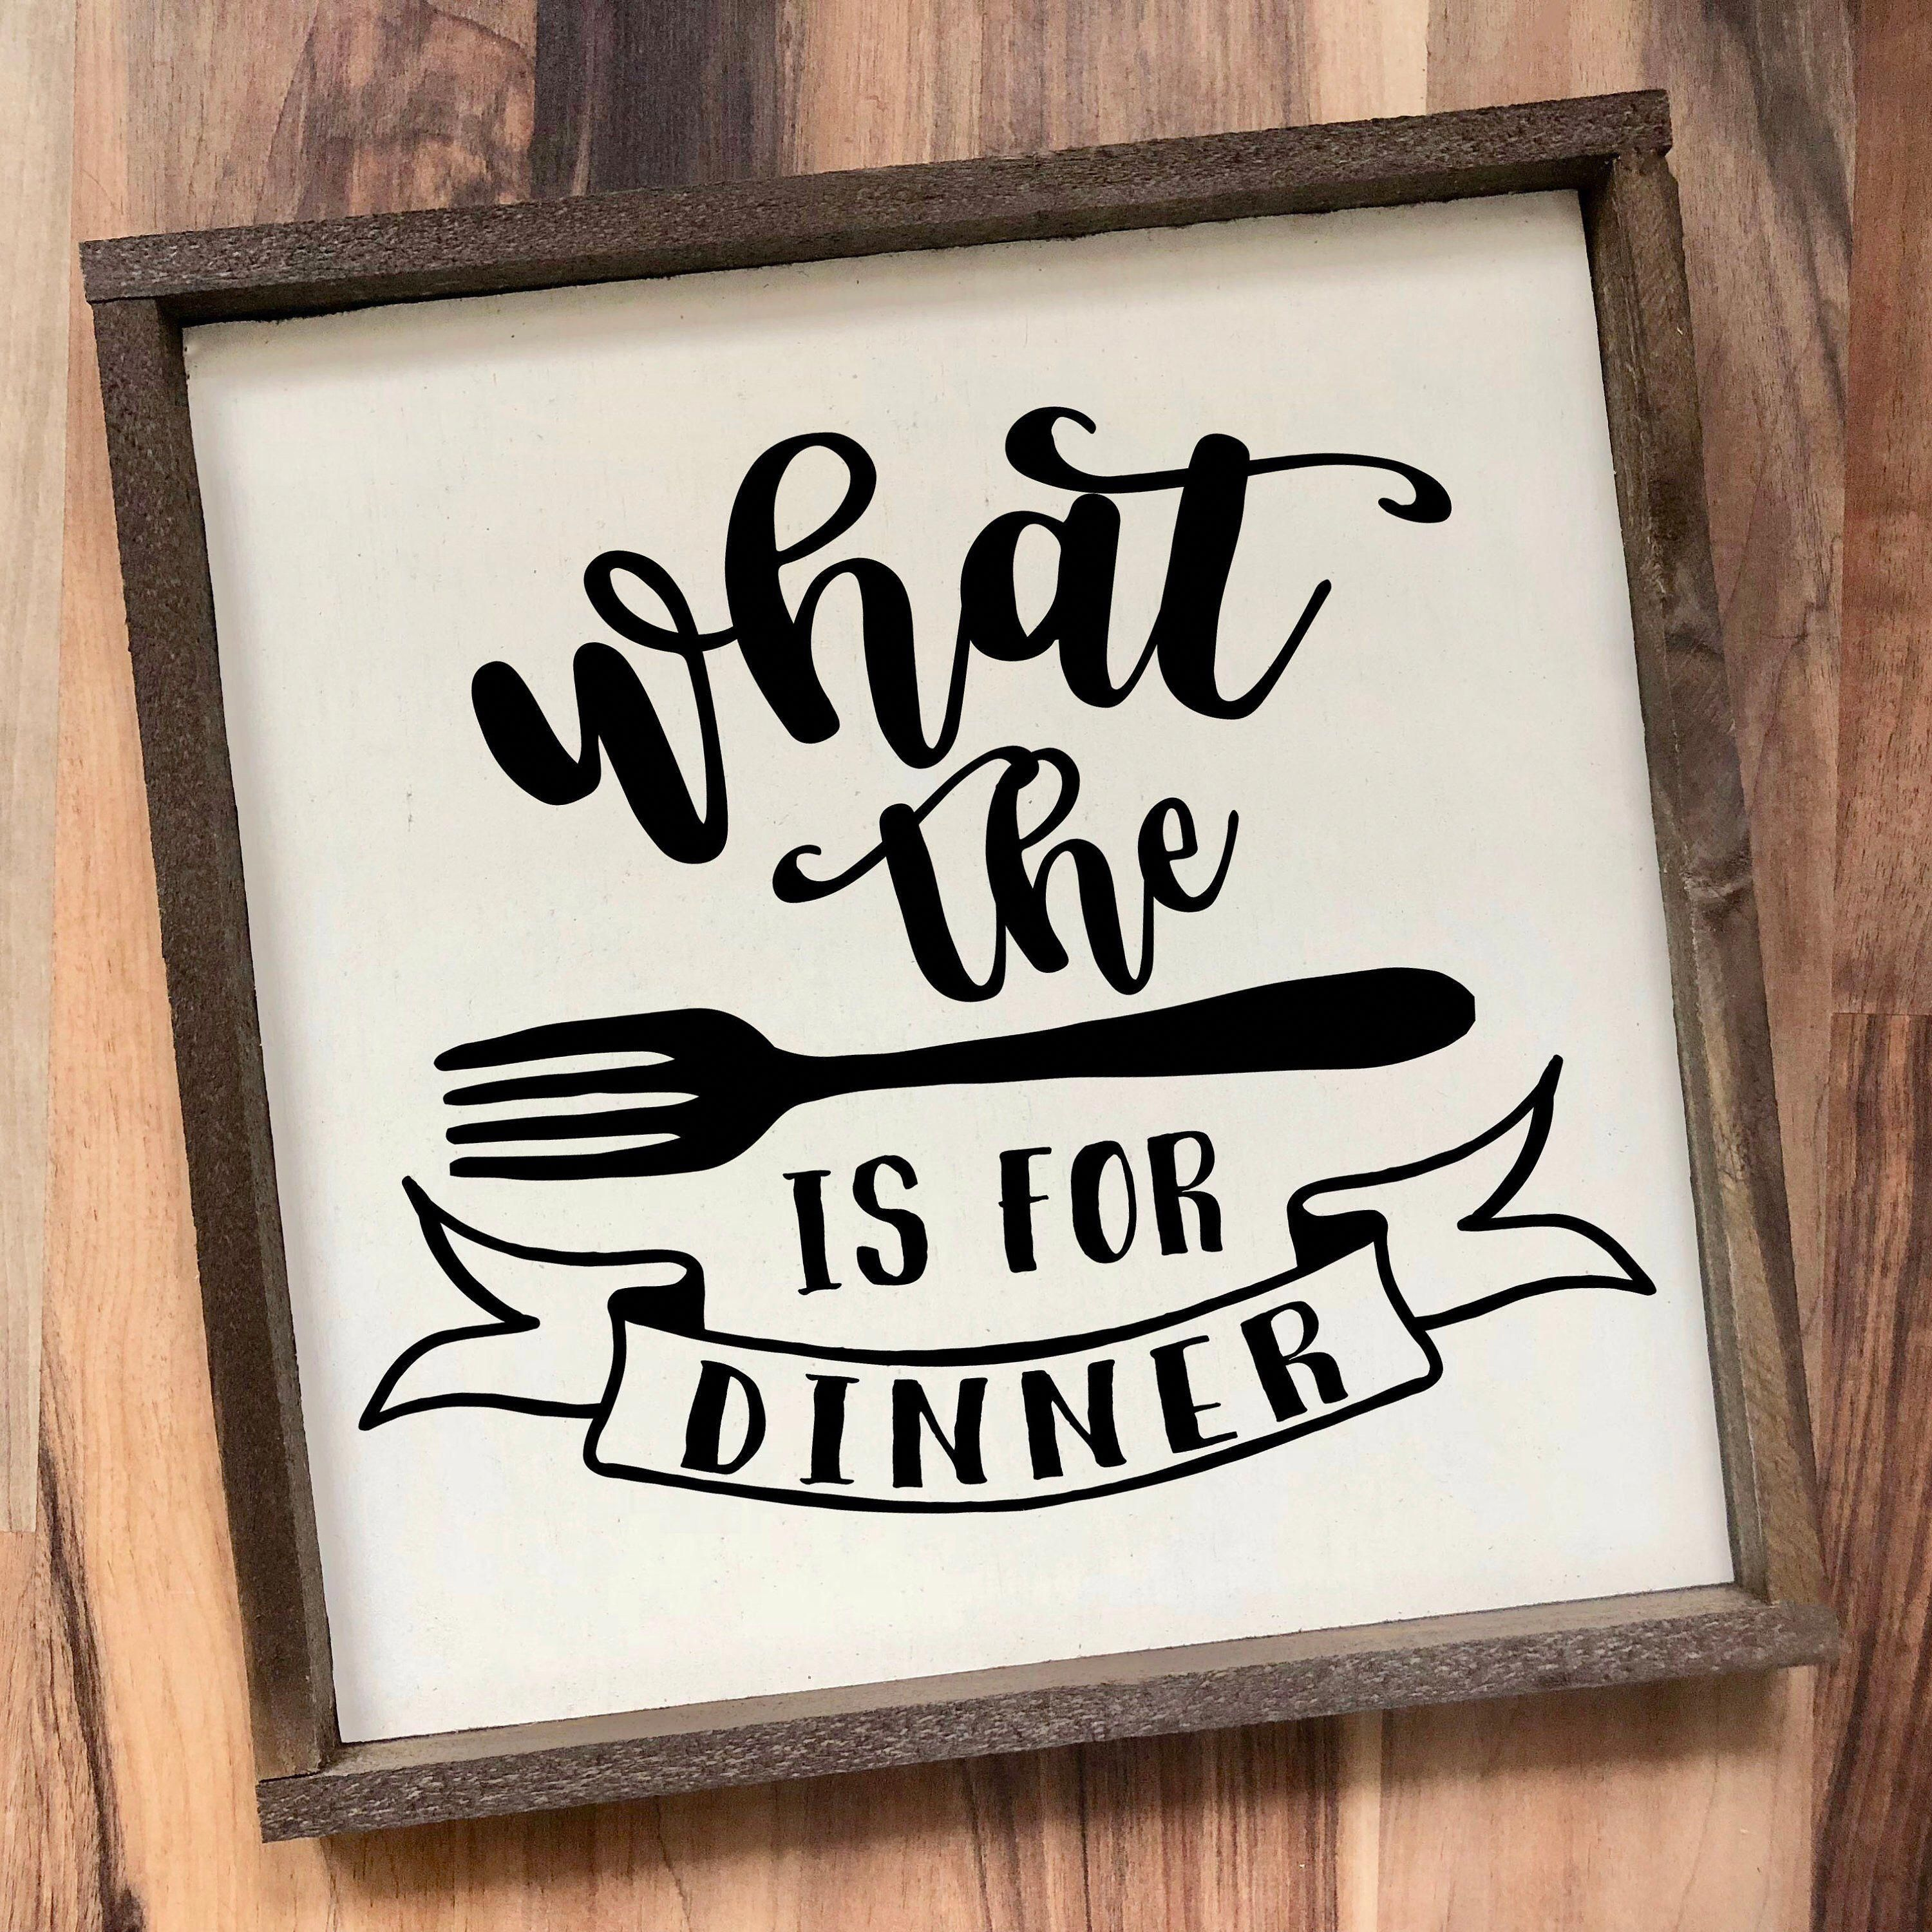 What the fork is for dinner funny kitchen sign framed wood | Etsy